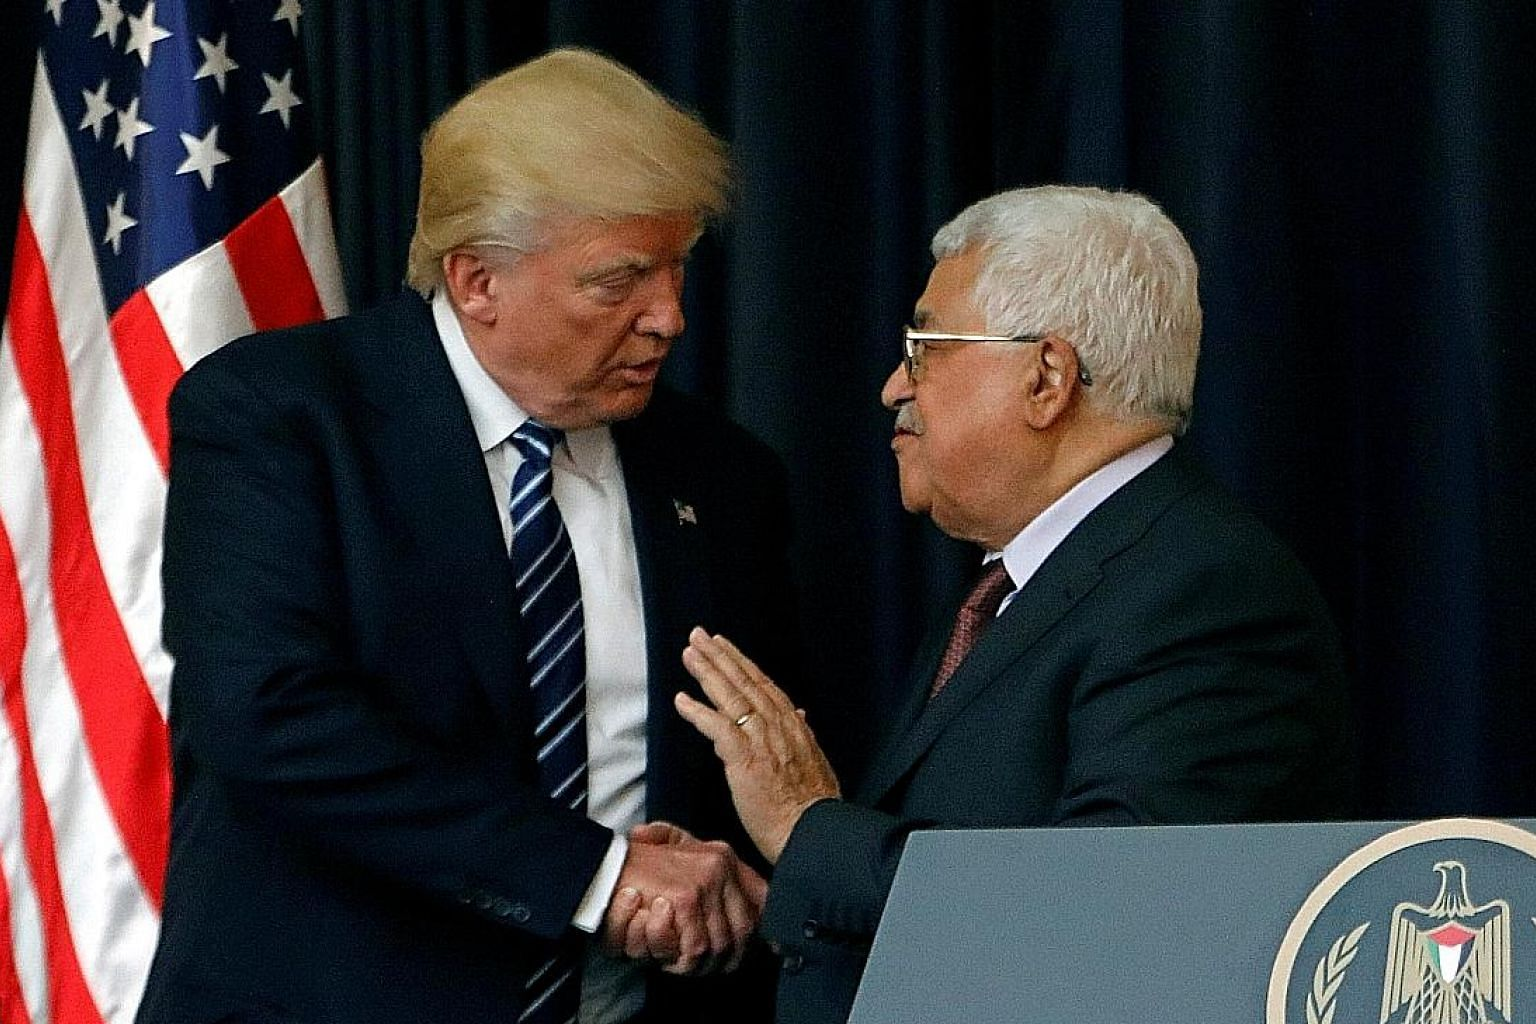 US President Donald Trump with Palestinian President Mahmoud Abbas in Bethlehem yesterday. The two men had a private meeting. Israeli Prime Minister Benjamin Netanyahu and Mr Trump chat during their meeting in Jerusalem yesterday. With them was White